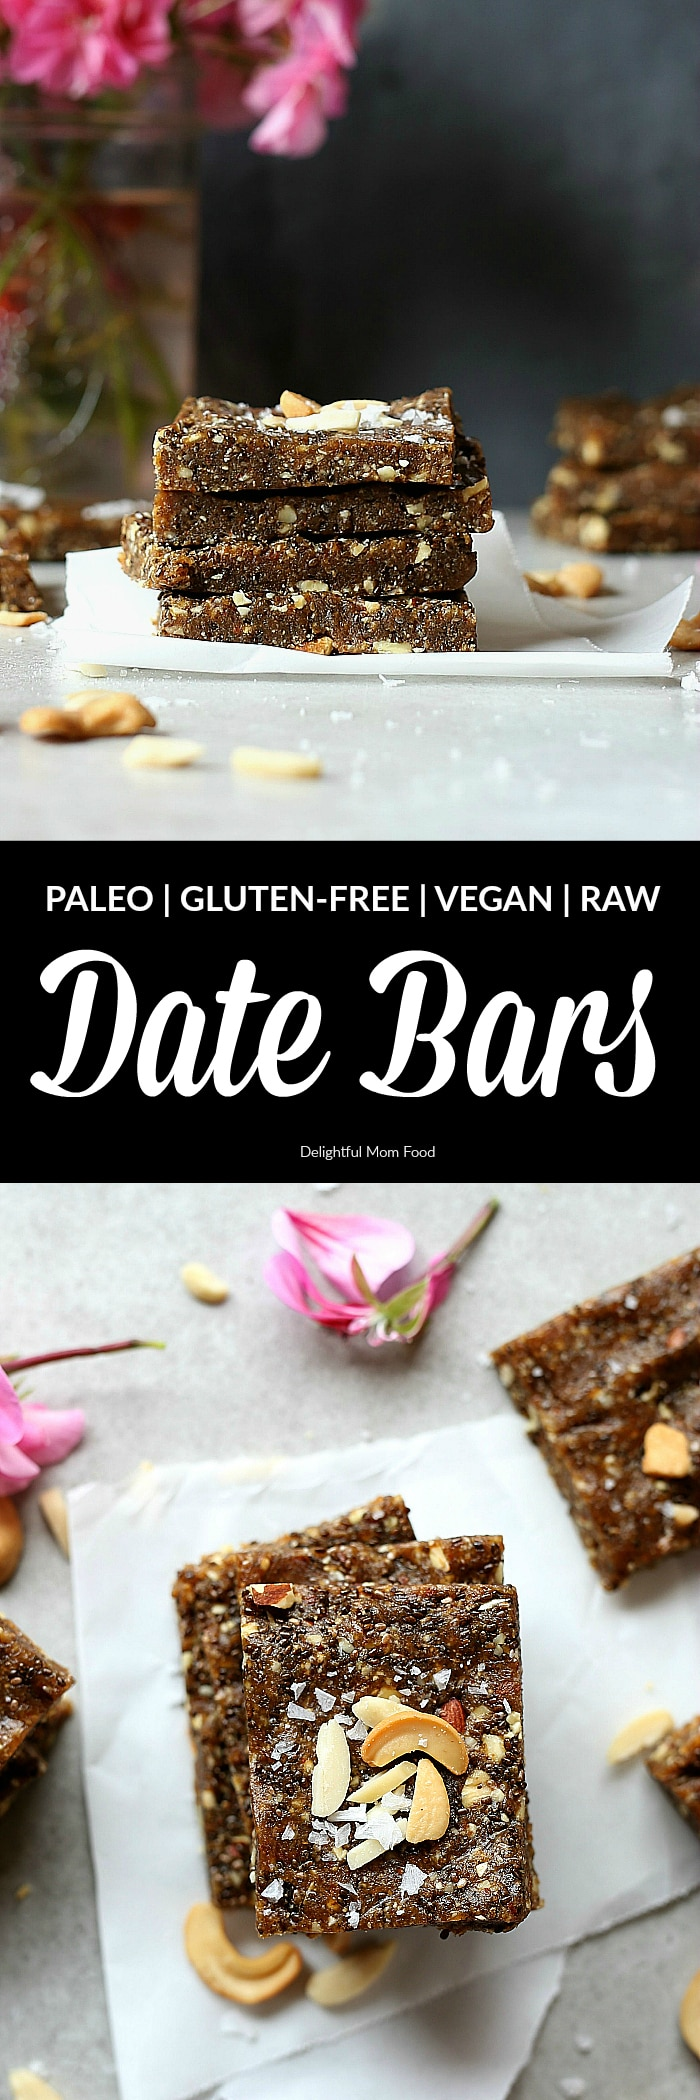 Heavenly date bars that aredeliciously good for you! A decadentraw bar rich in natural sweetness fromMedjool dates! These easy raw chia date bars take as little as 10 minutes to make! They are the chewy, soft, crunchy and make the perfect superfood energy pick-me-up after a workout or first thing in the morning! #raw #date #bars #snacks #healthy #glutenfree #grainfree #paleo #easy #homemade | Recipe at delightfulmomfood.com